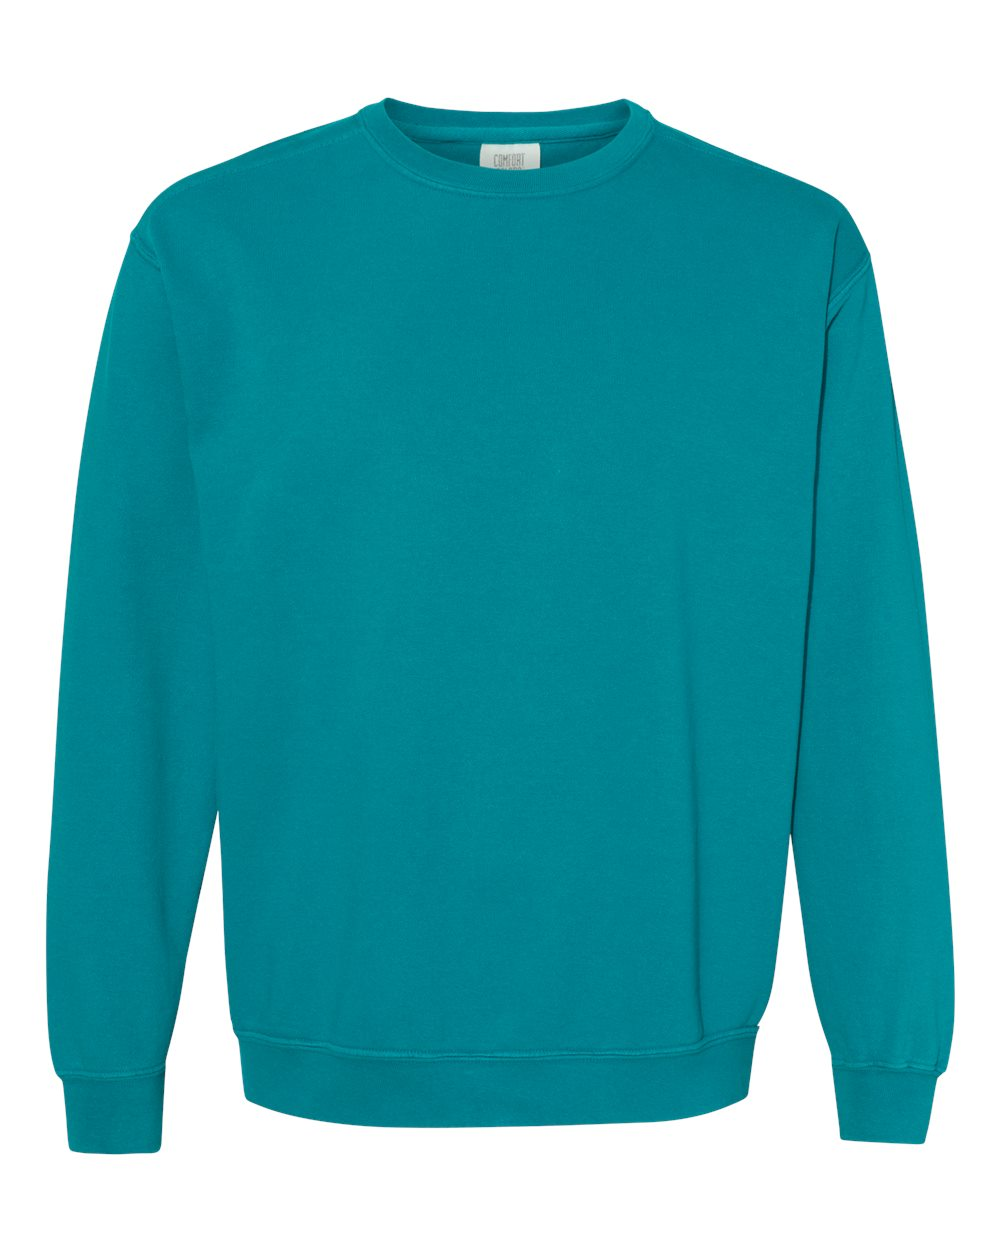 Comfort-Colors-Mens-Garment-Dyed-Ringspun-Crewneck-Sweatshirt-1566-up-to-3XL miniature 57